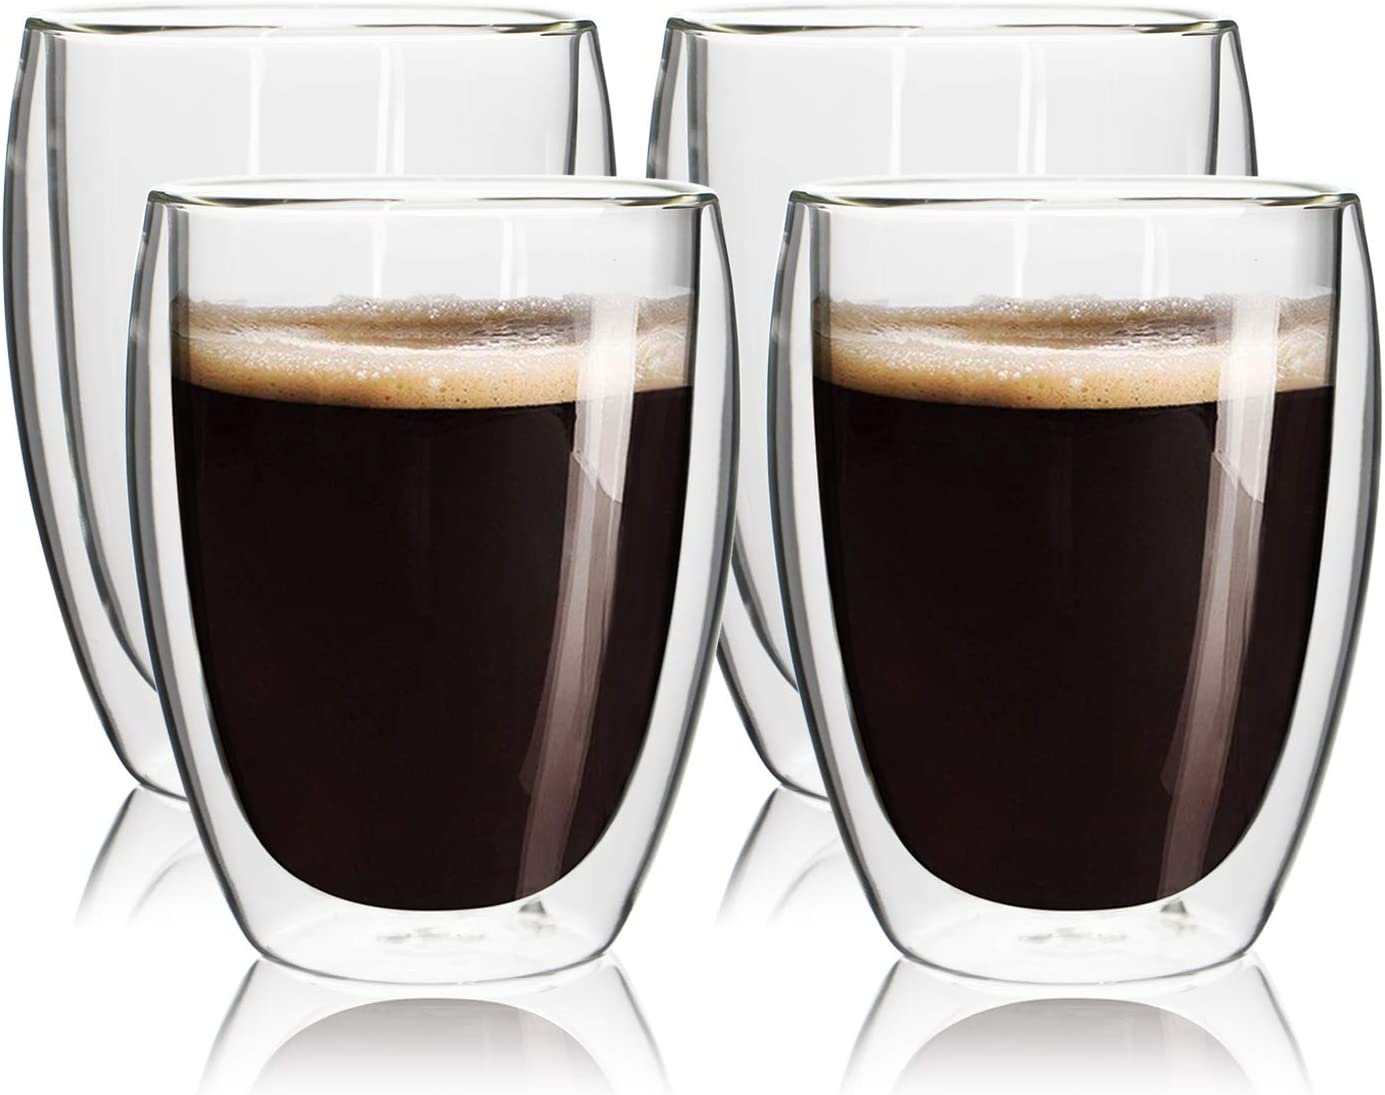 Double Wall Insulated Glass Coffee Cups,12oz or 350ml,Set of 4,Glass Coffee Mug,Tea Cups,Glass Cups,Latte Cups,Beverage Glasses,Clear Wine Glasses,Heat Resistant,Dishwasher Safe